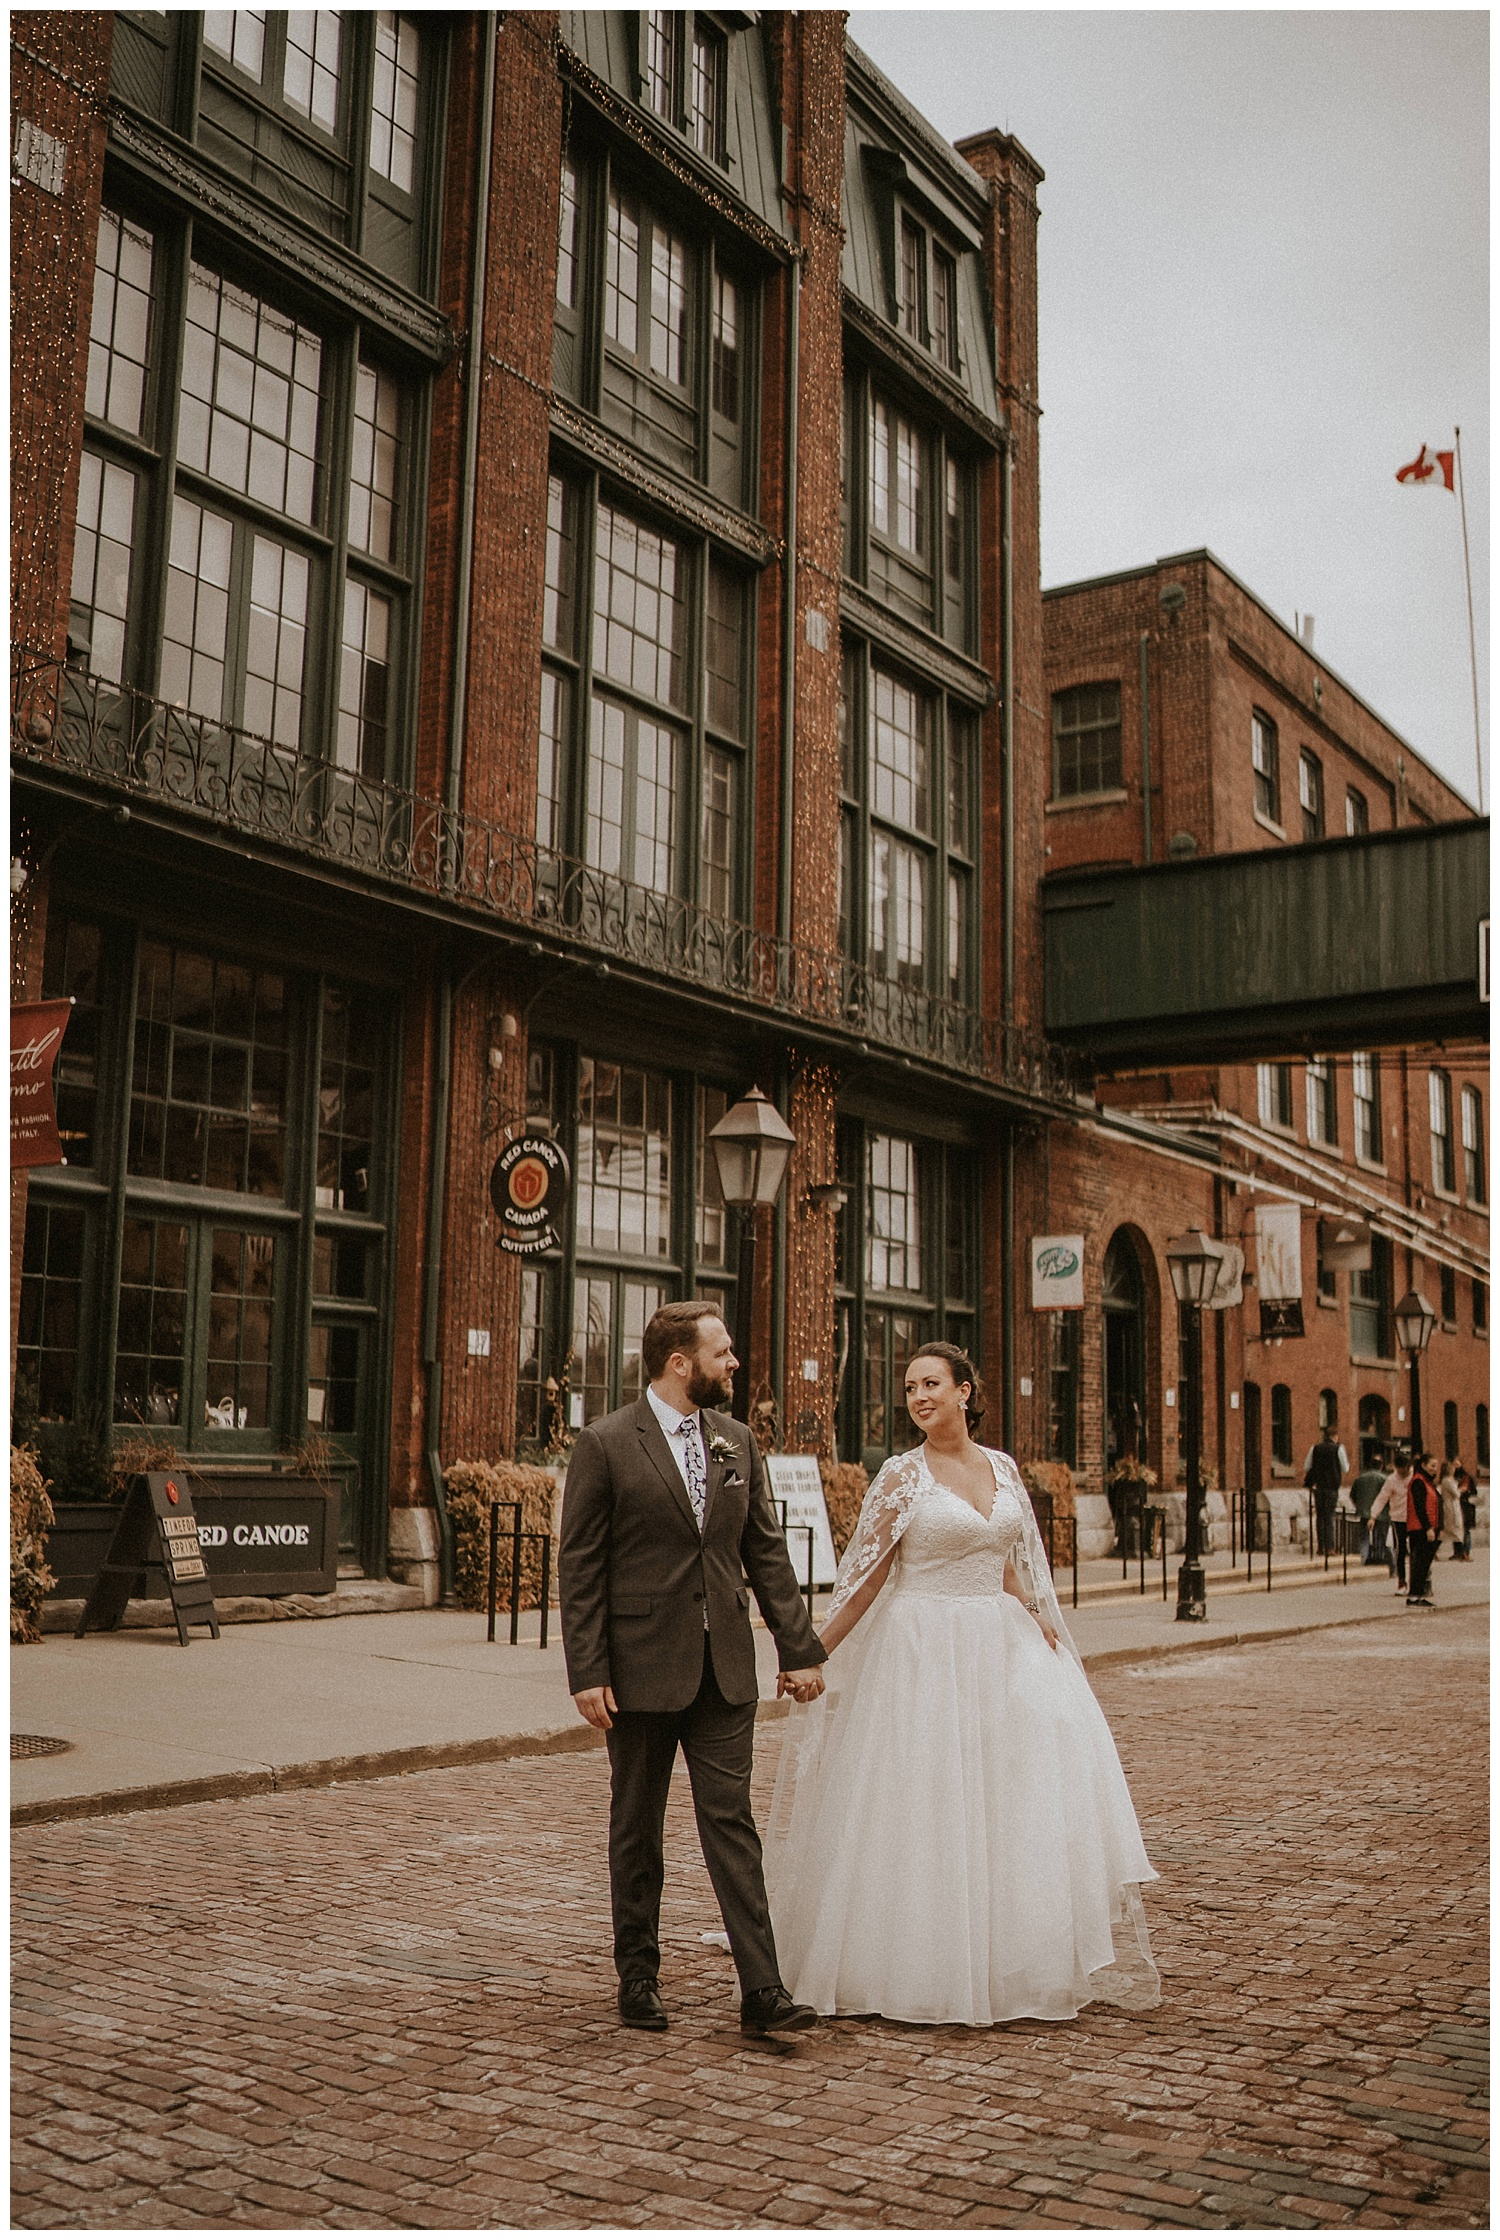 Katie Marie Photography | Archeo Wedding Arta Gallery Wedding | Distillery District Wedding | Toronto Wedding Photographer | Hamilton Toronto Ontario Wedding Photographer |_0077.jpg